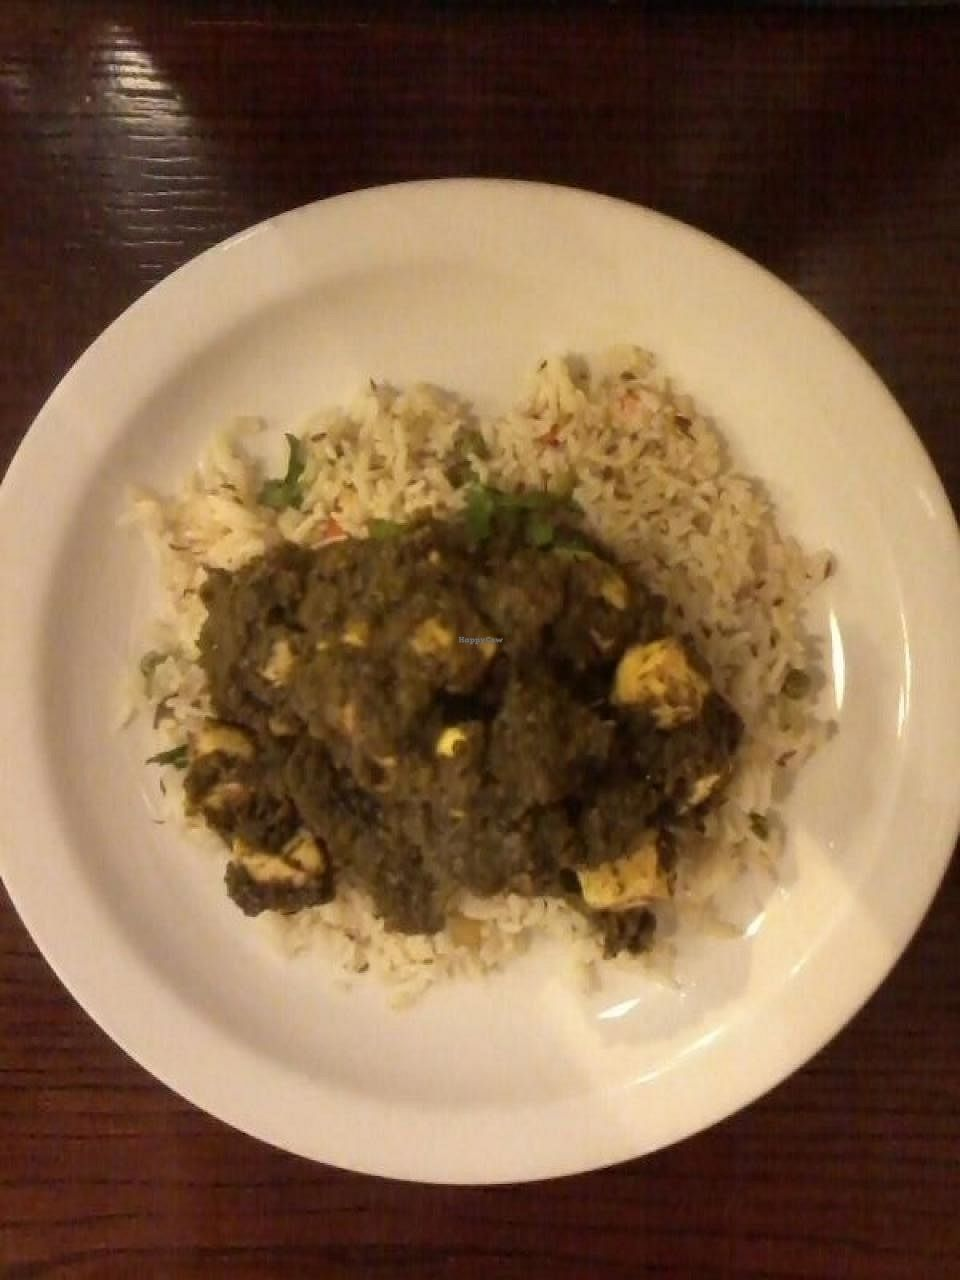 """Photo of Hansa's Restaurant  by <a href=""""/members/profile/deadpledge"""">deadpledge</a> <br/>Saag Paneer <br/> April 14, 2014  - <a href='/contact/abuse/image/776/182805'>Report</a>"""